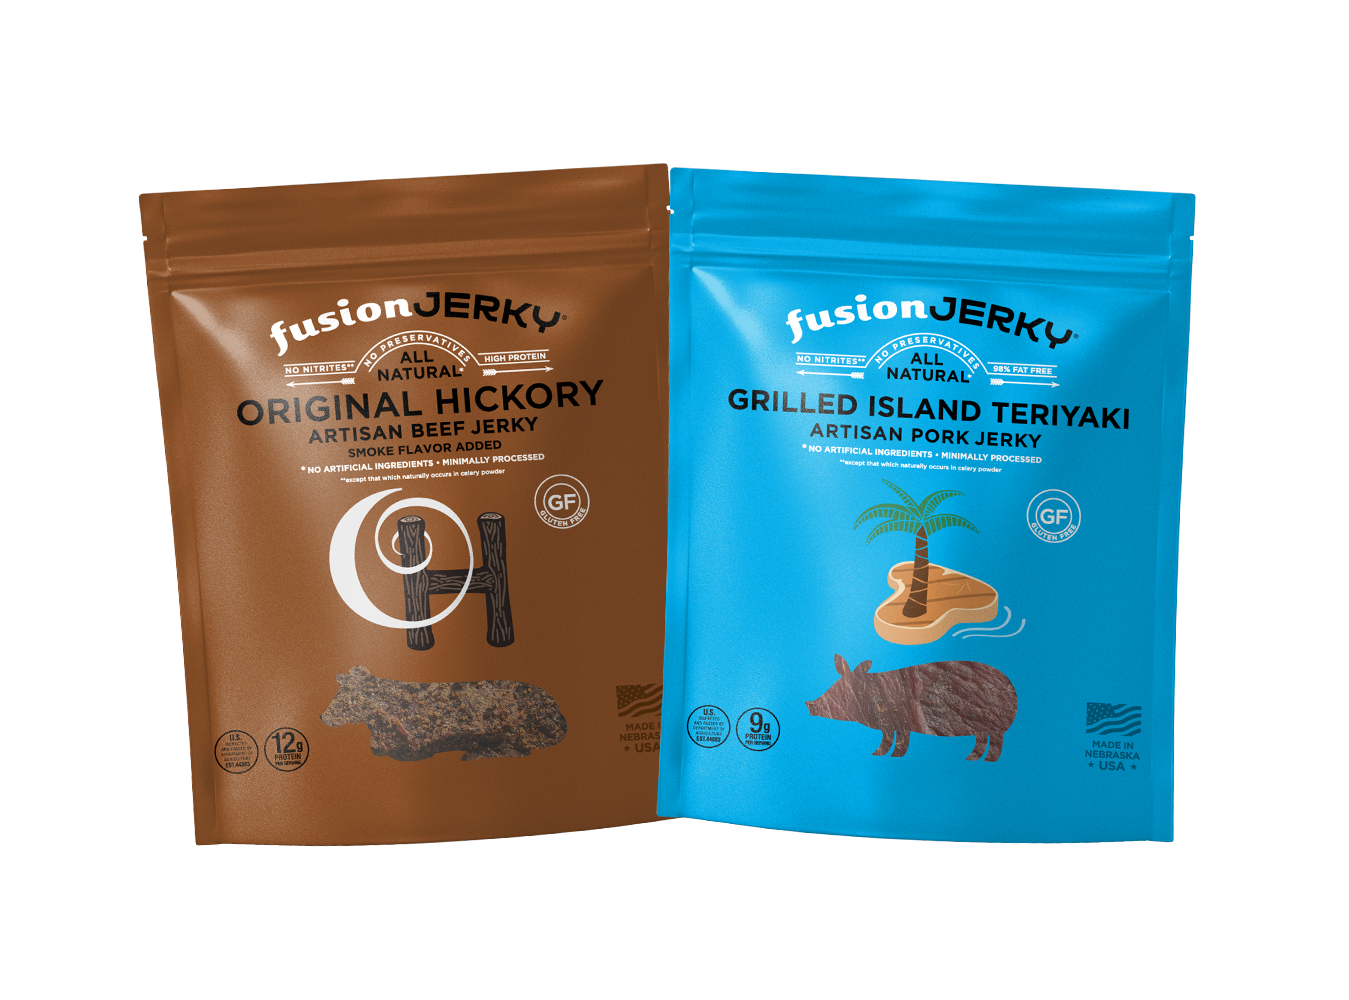 Original Hickory and Grilled Island Jerky Trial Pack Two 1 oz Packs - Fusion Jerky